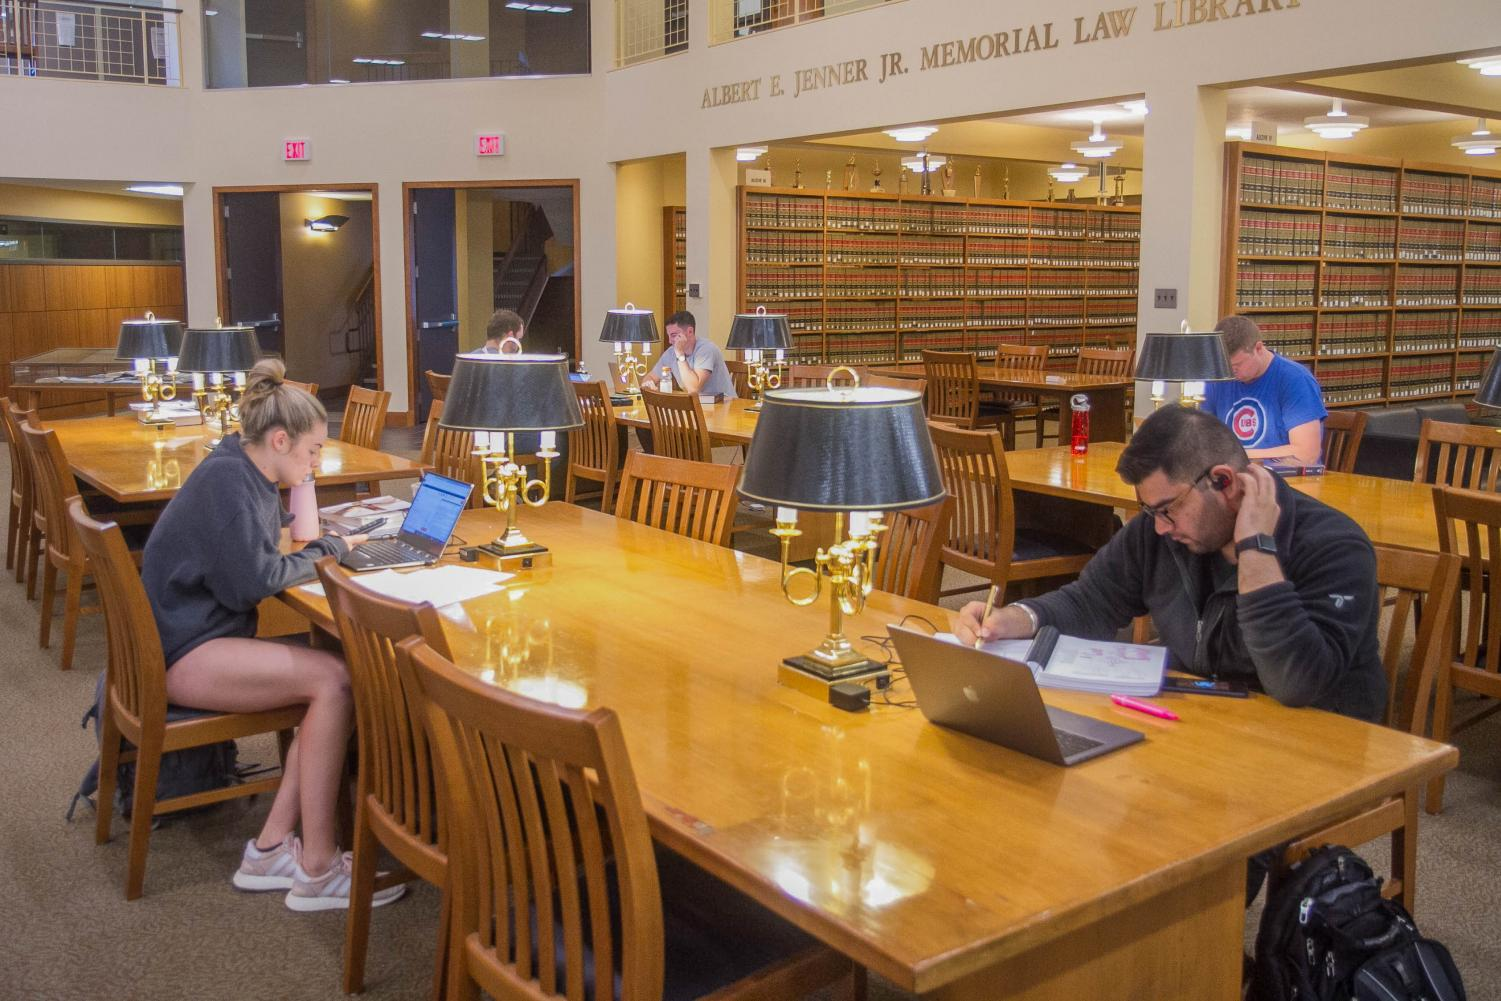 Law students study in the Albert E. Jenner Jr. Memorial Law Library on Tuesday. The law school entrance test will soon be conducted digitally on tablets.